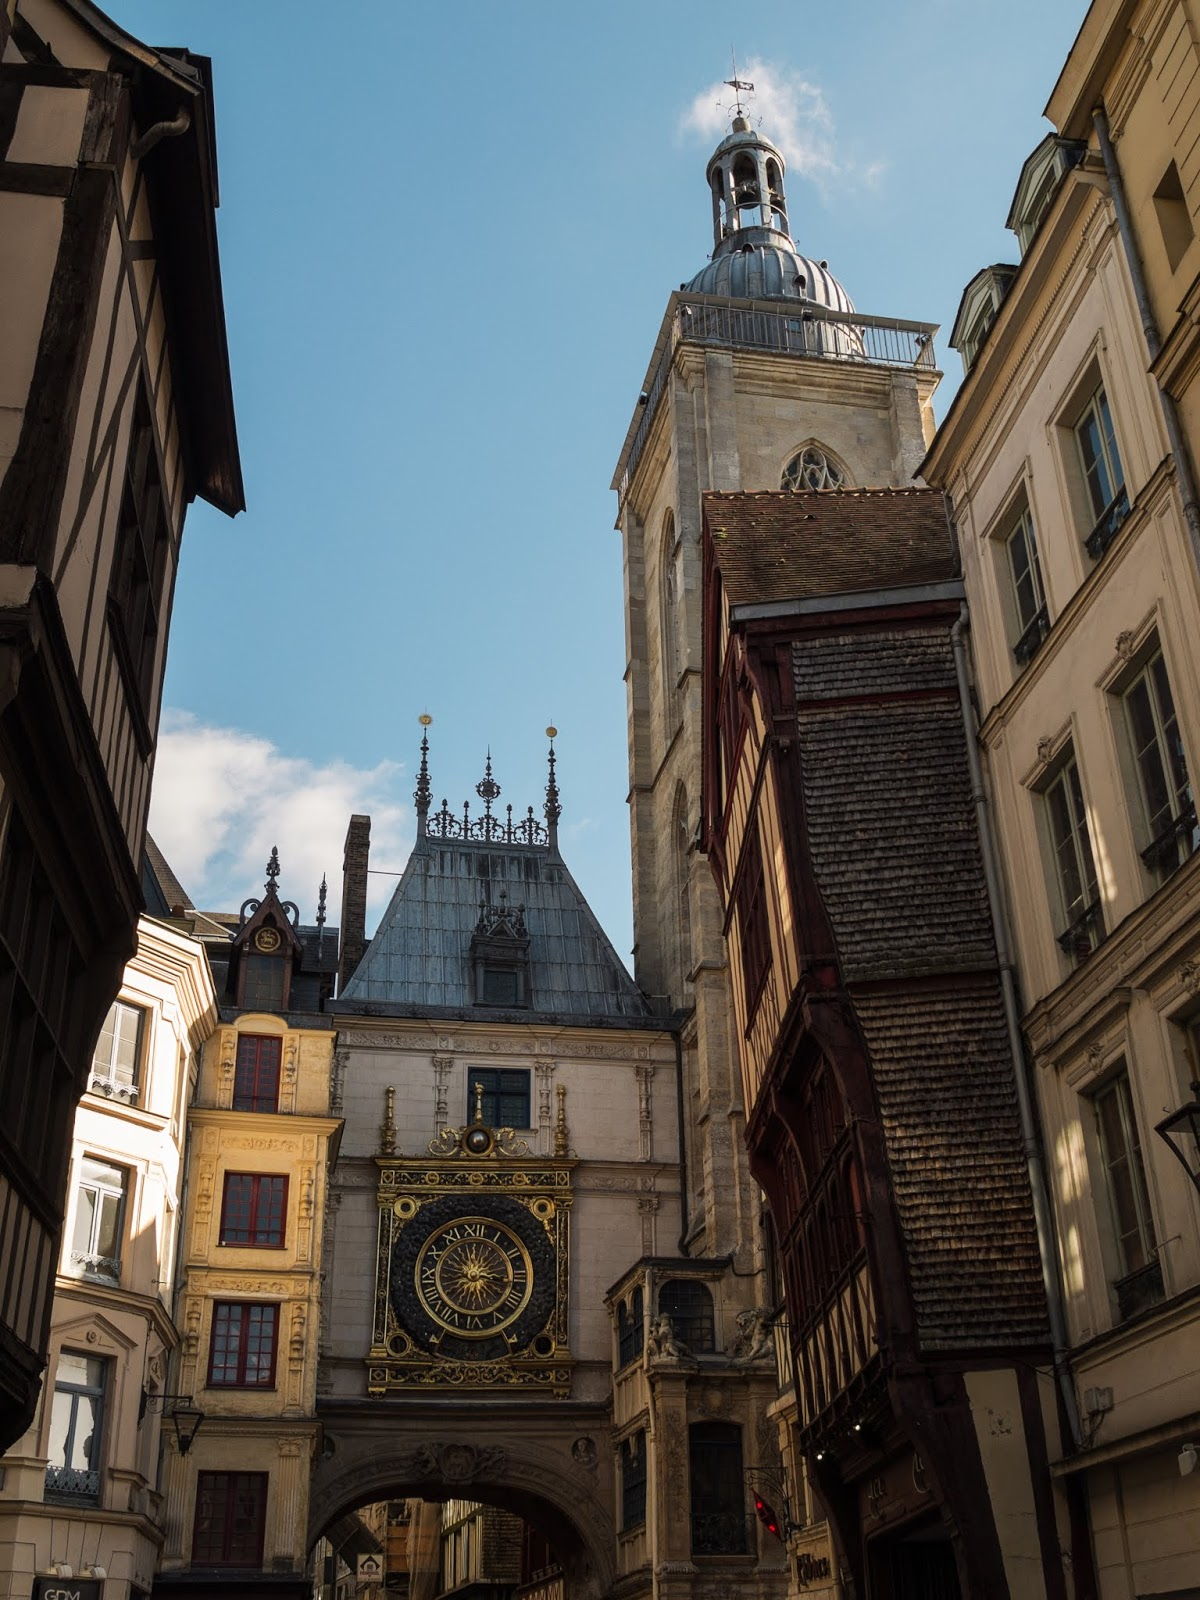 Gros Horloge street in Rouen with a view of the clock.